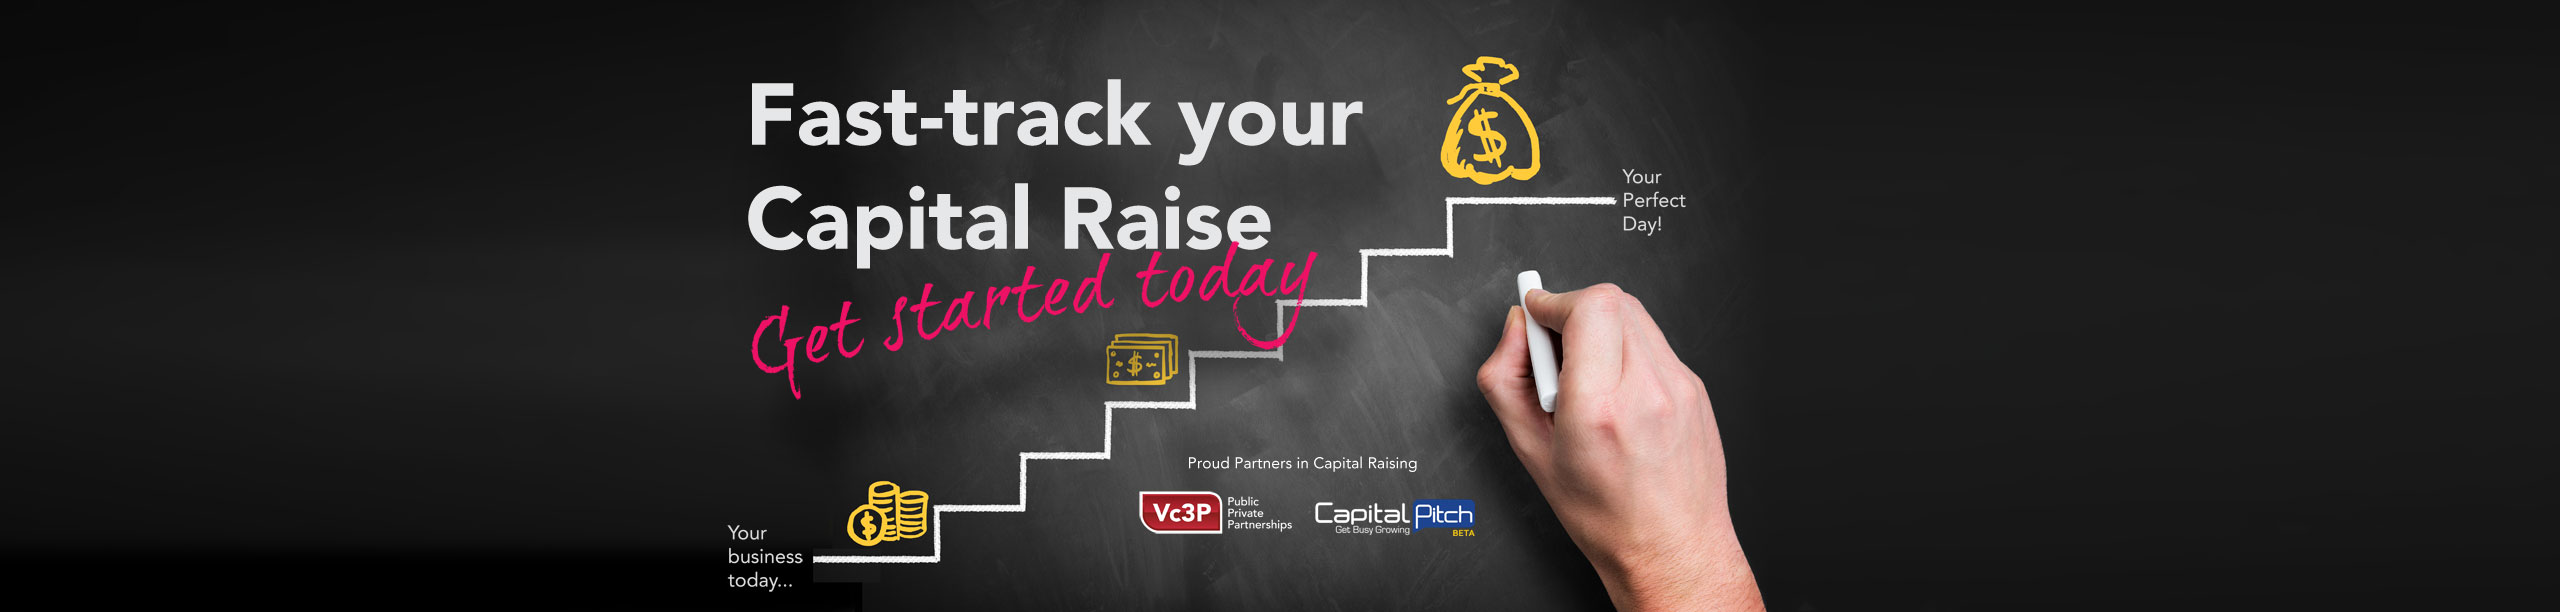 Capital-Raise-Art